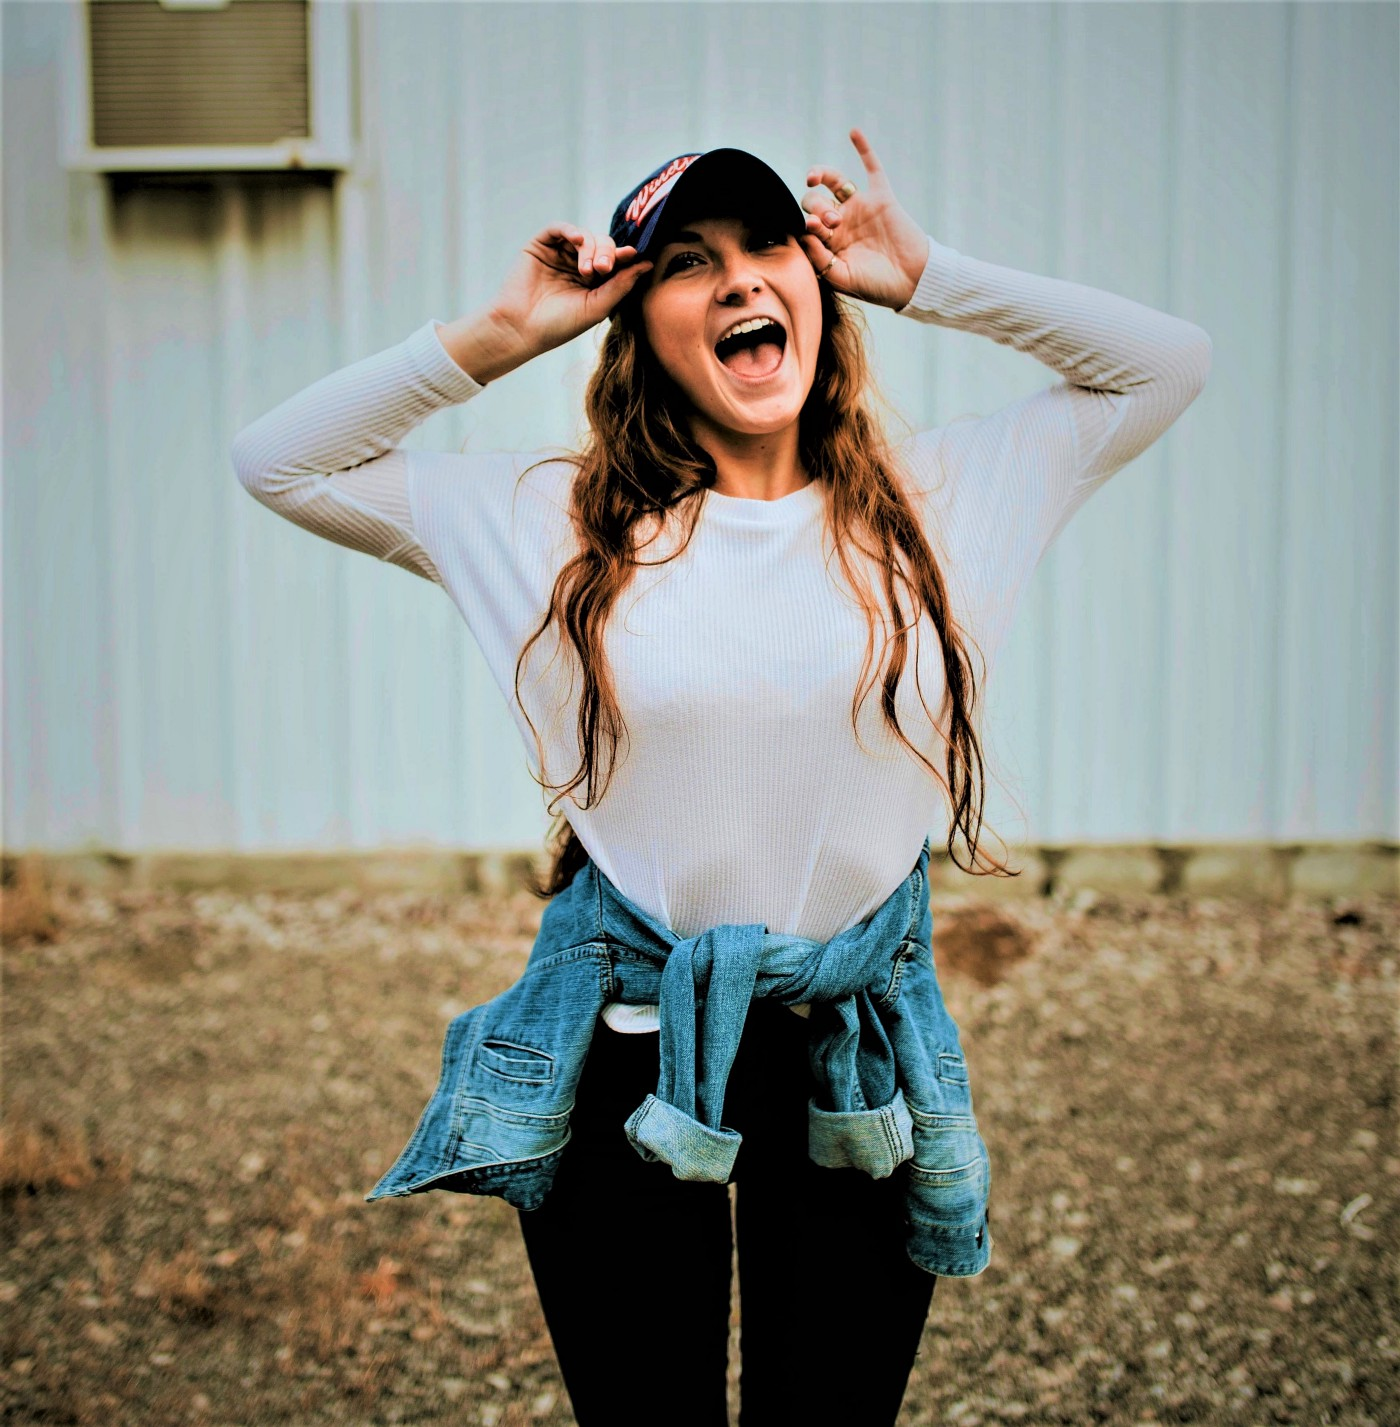 happy girl with long brown hair wearing long sleeve light top and baseball cap